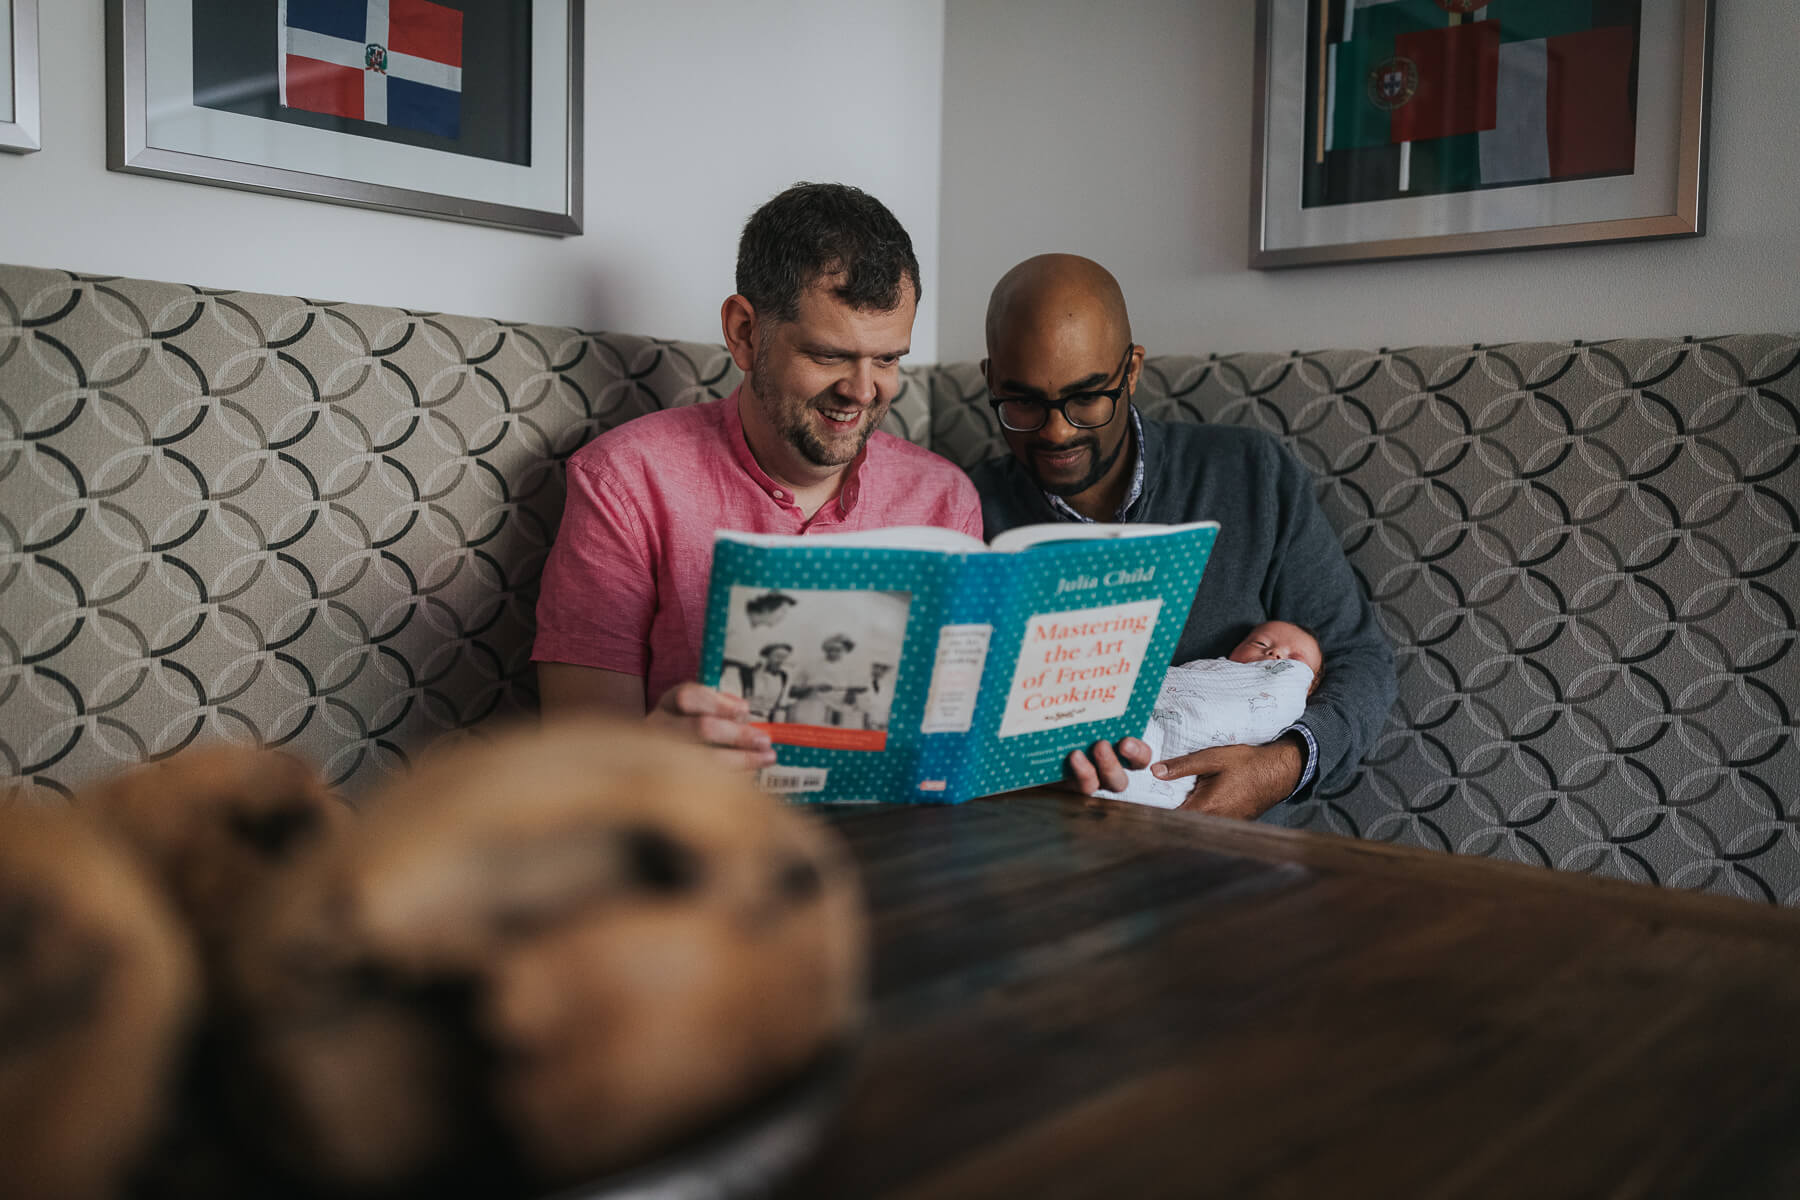 Same sex parents reading Julia Child's cookbook to their adopted daughter